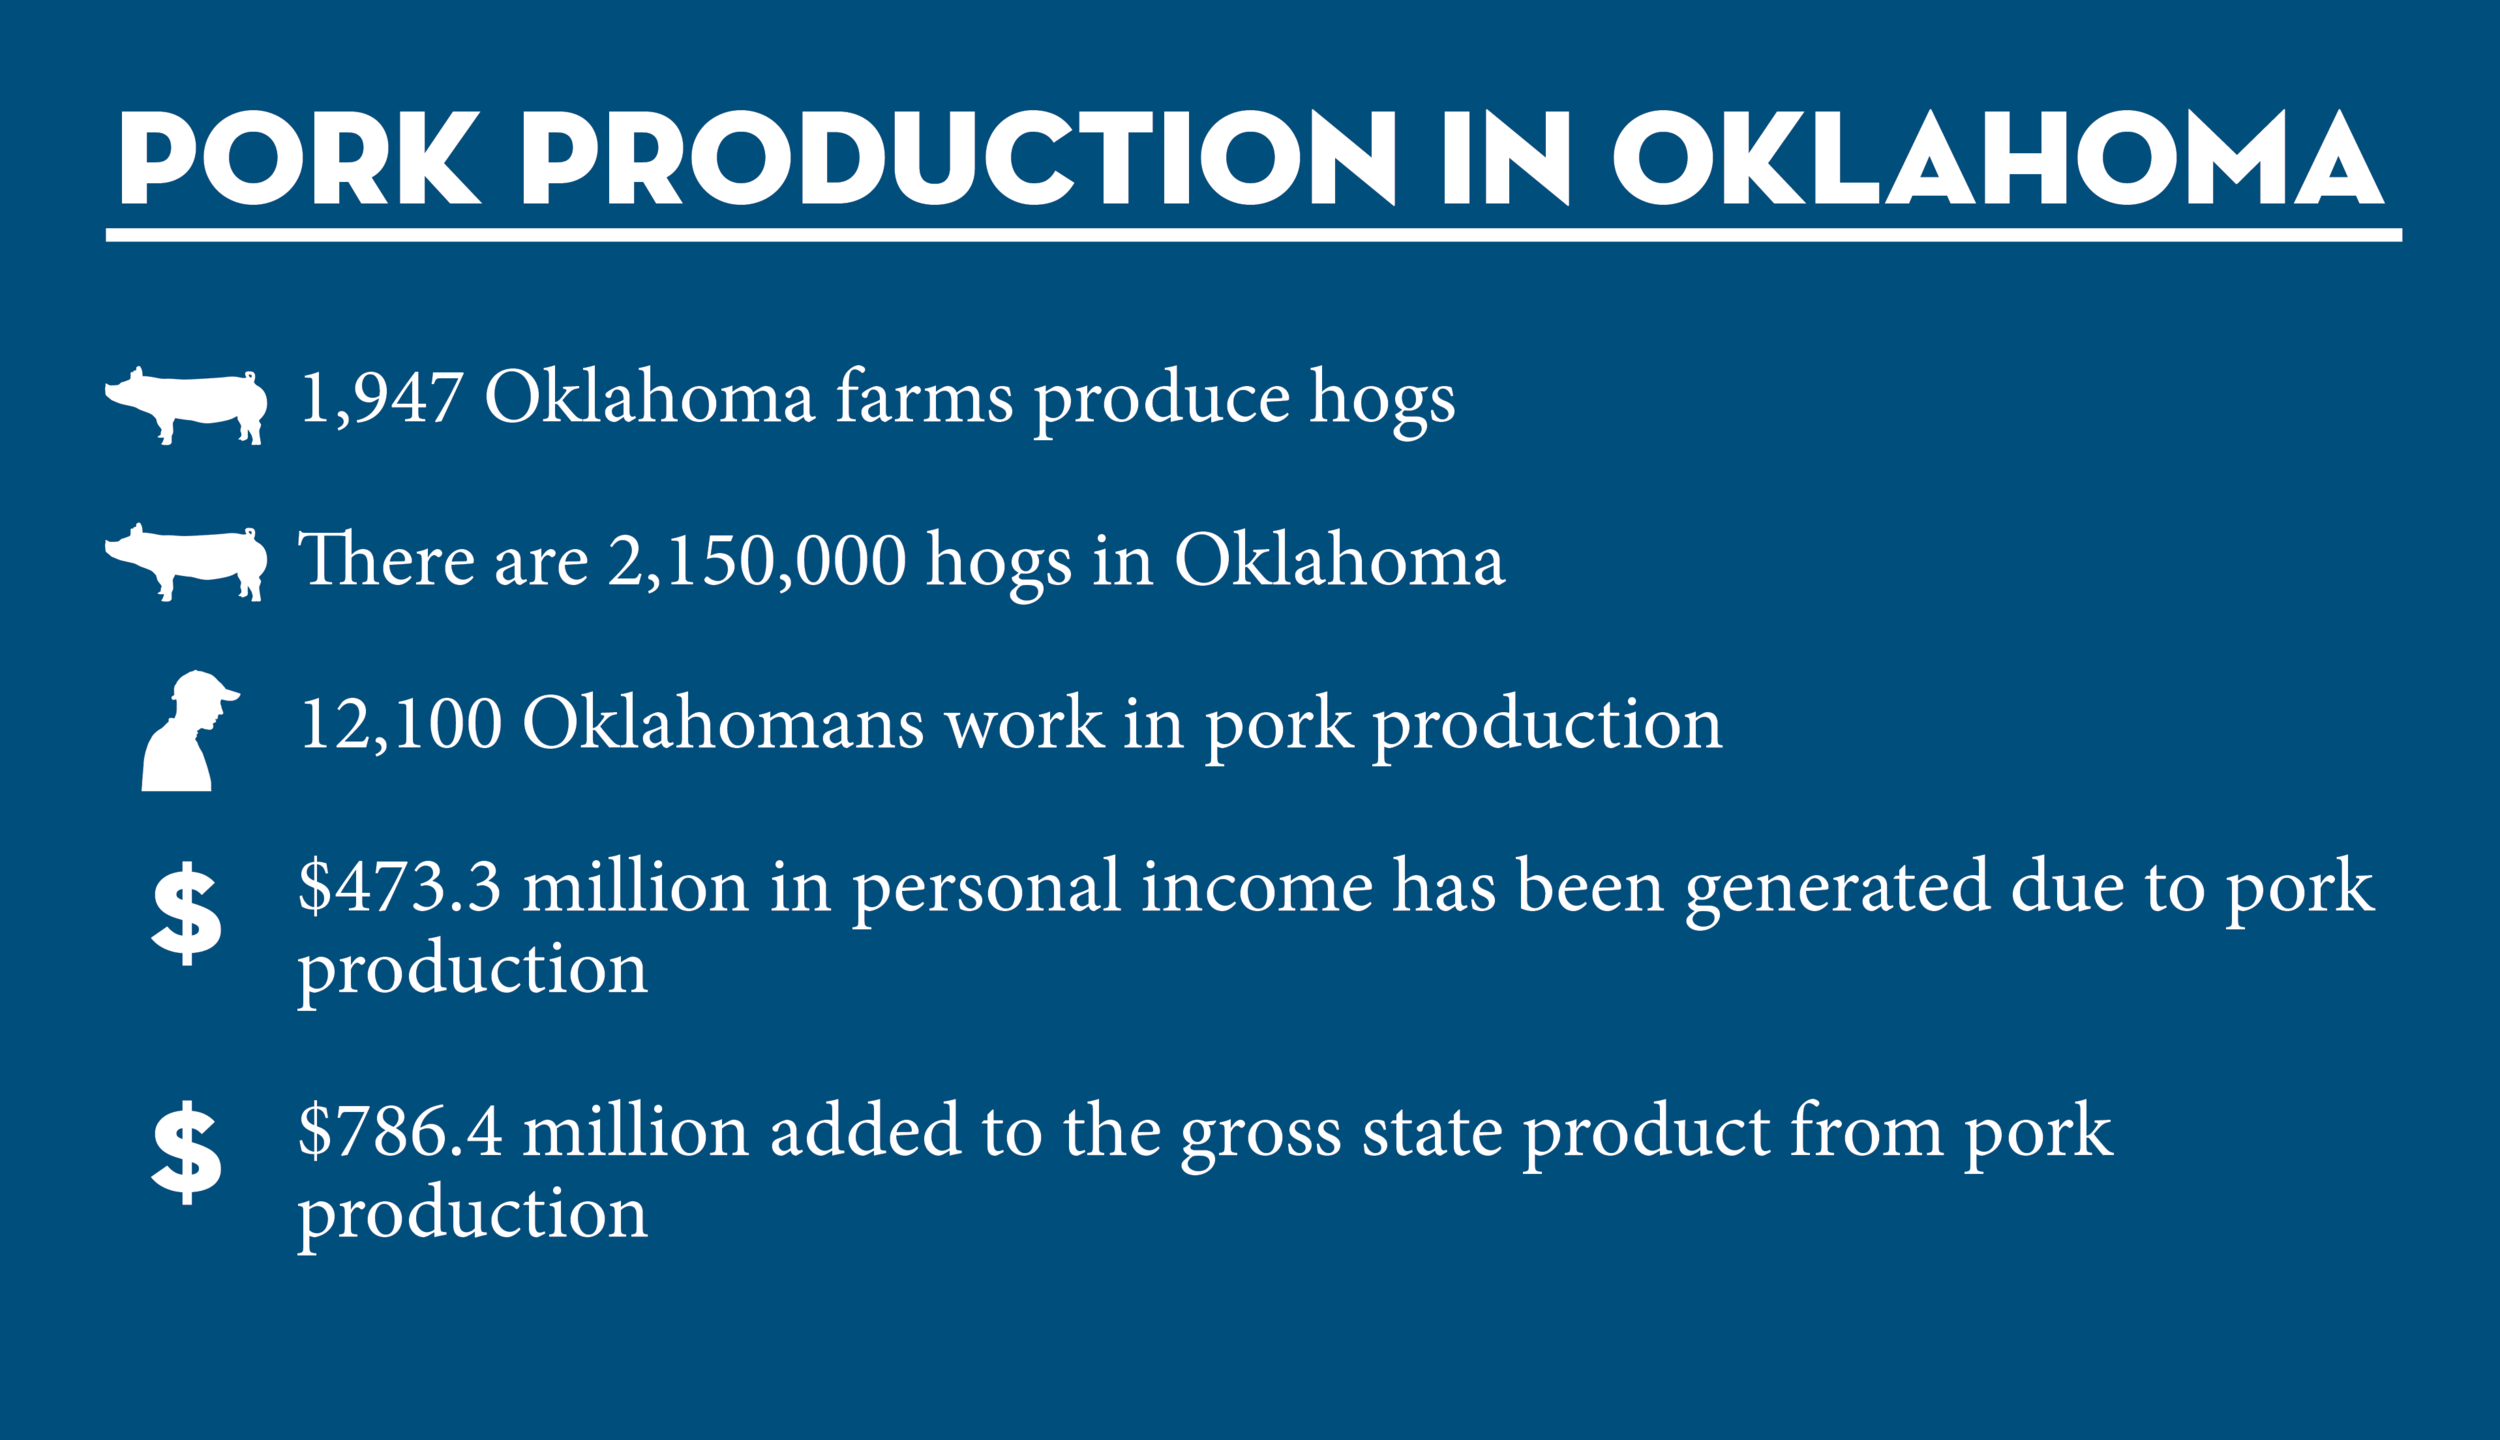 Pork production has a big economic impact on Oklahoma's economy. The stats above tell most of the story, but you can  click here to learn more.